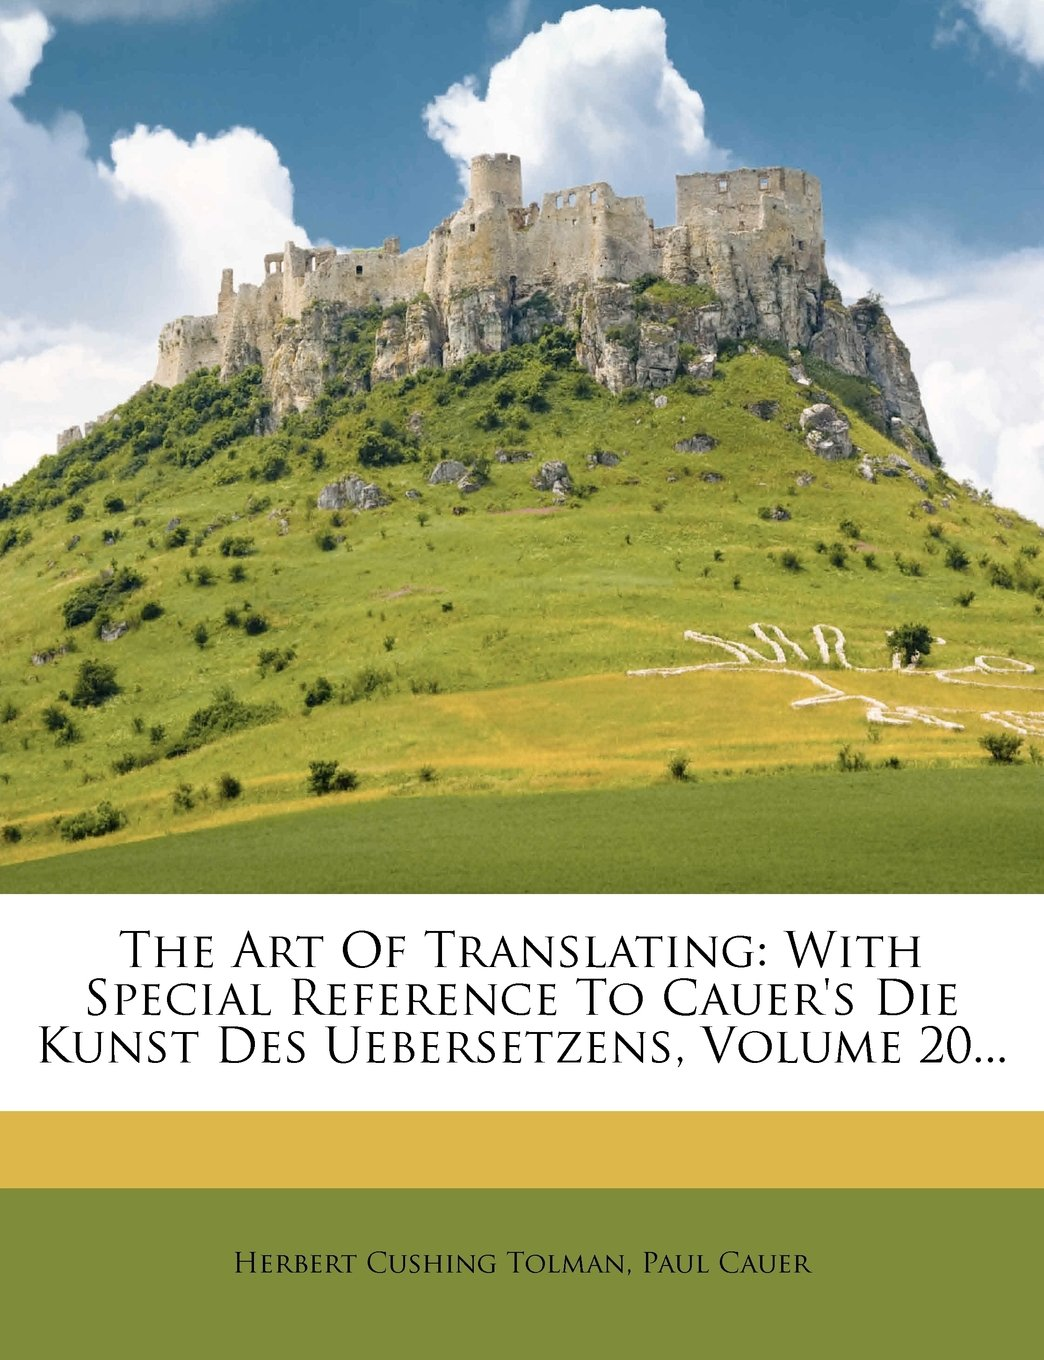 The Art Of Translating: With Special Reference To Cauer's Die Kunst Des Uebersetzens, Volume 20... ebook